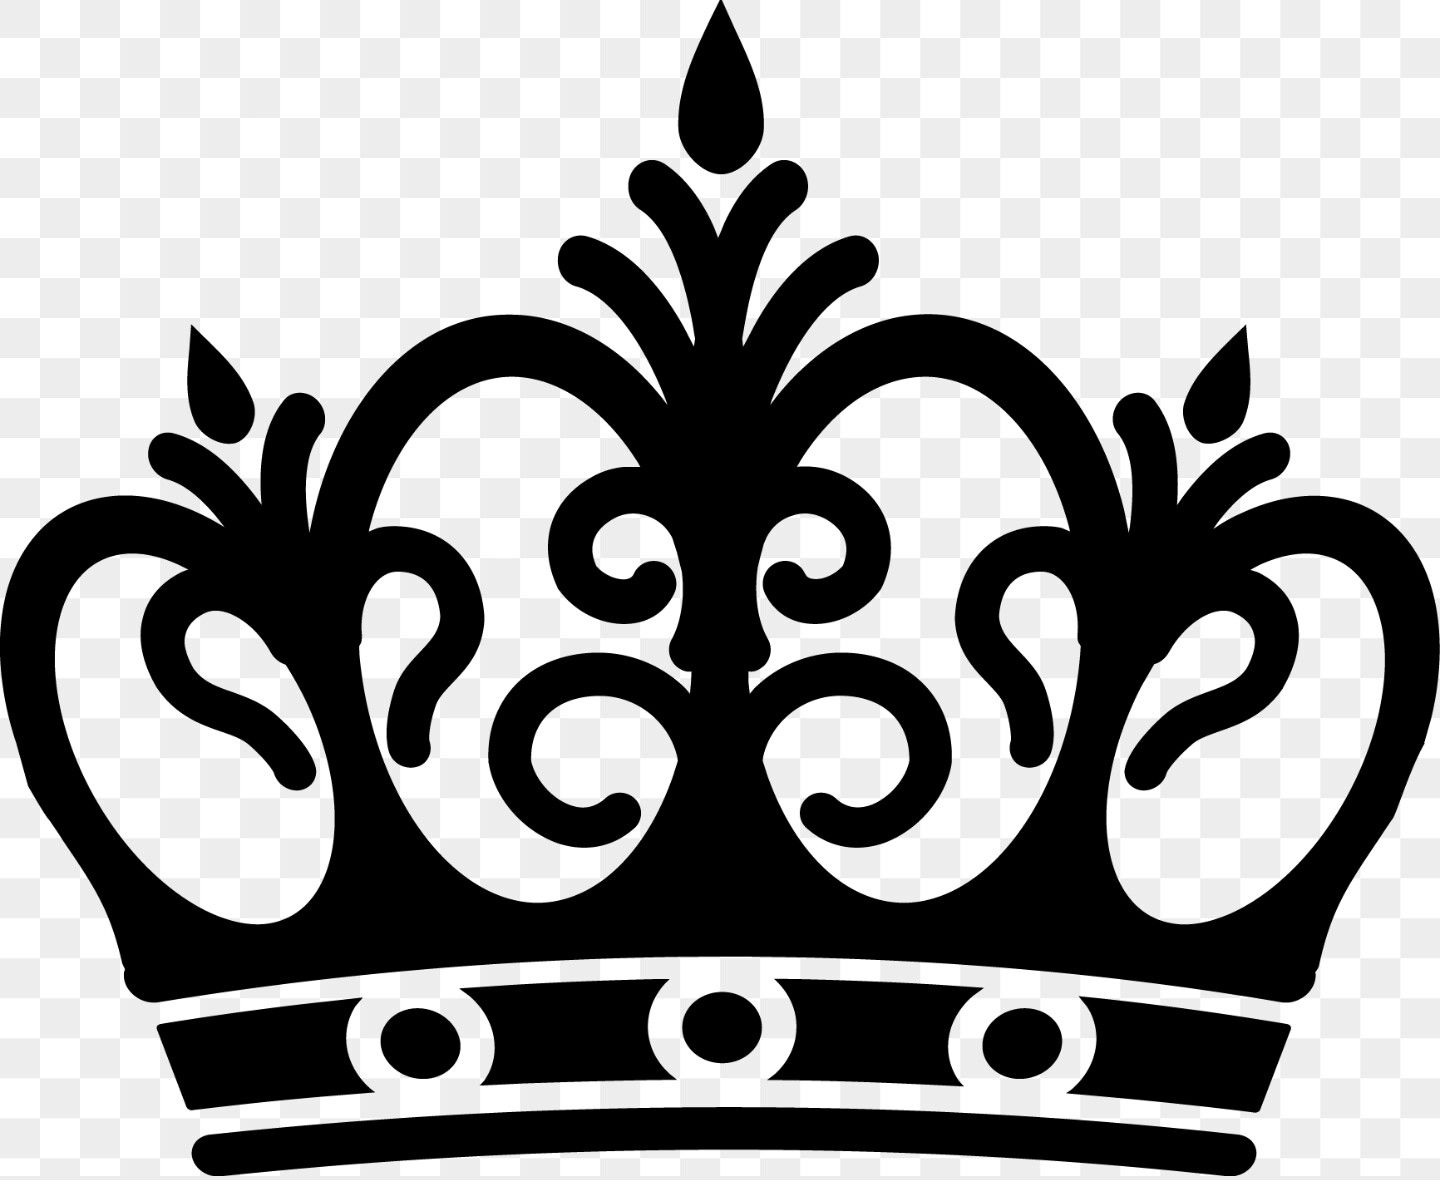 Pin By Melissa Ochoa On Everything Cricut Free Clip Art Crown Drawing Crown Png